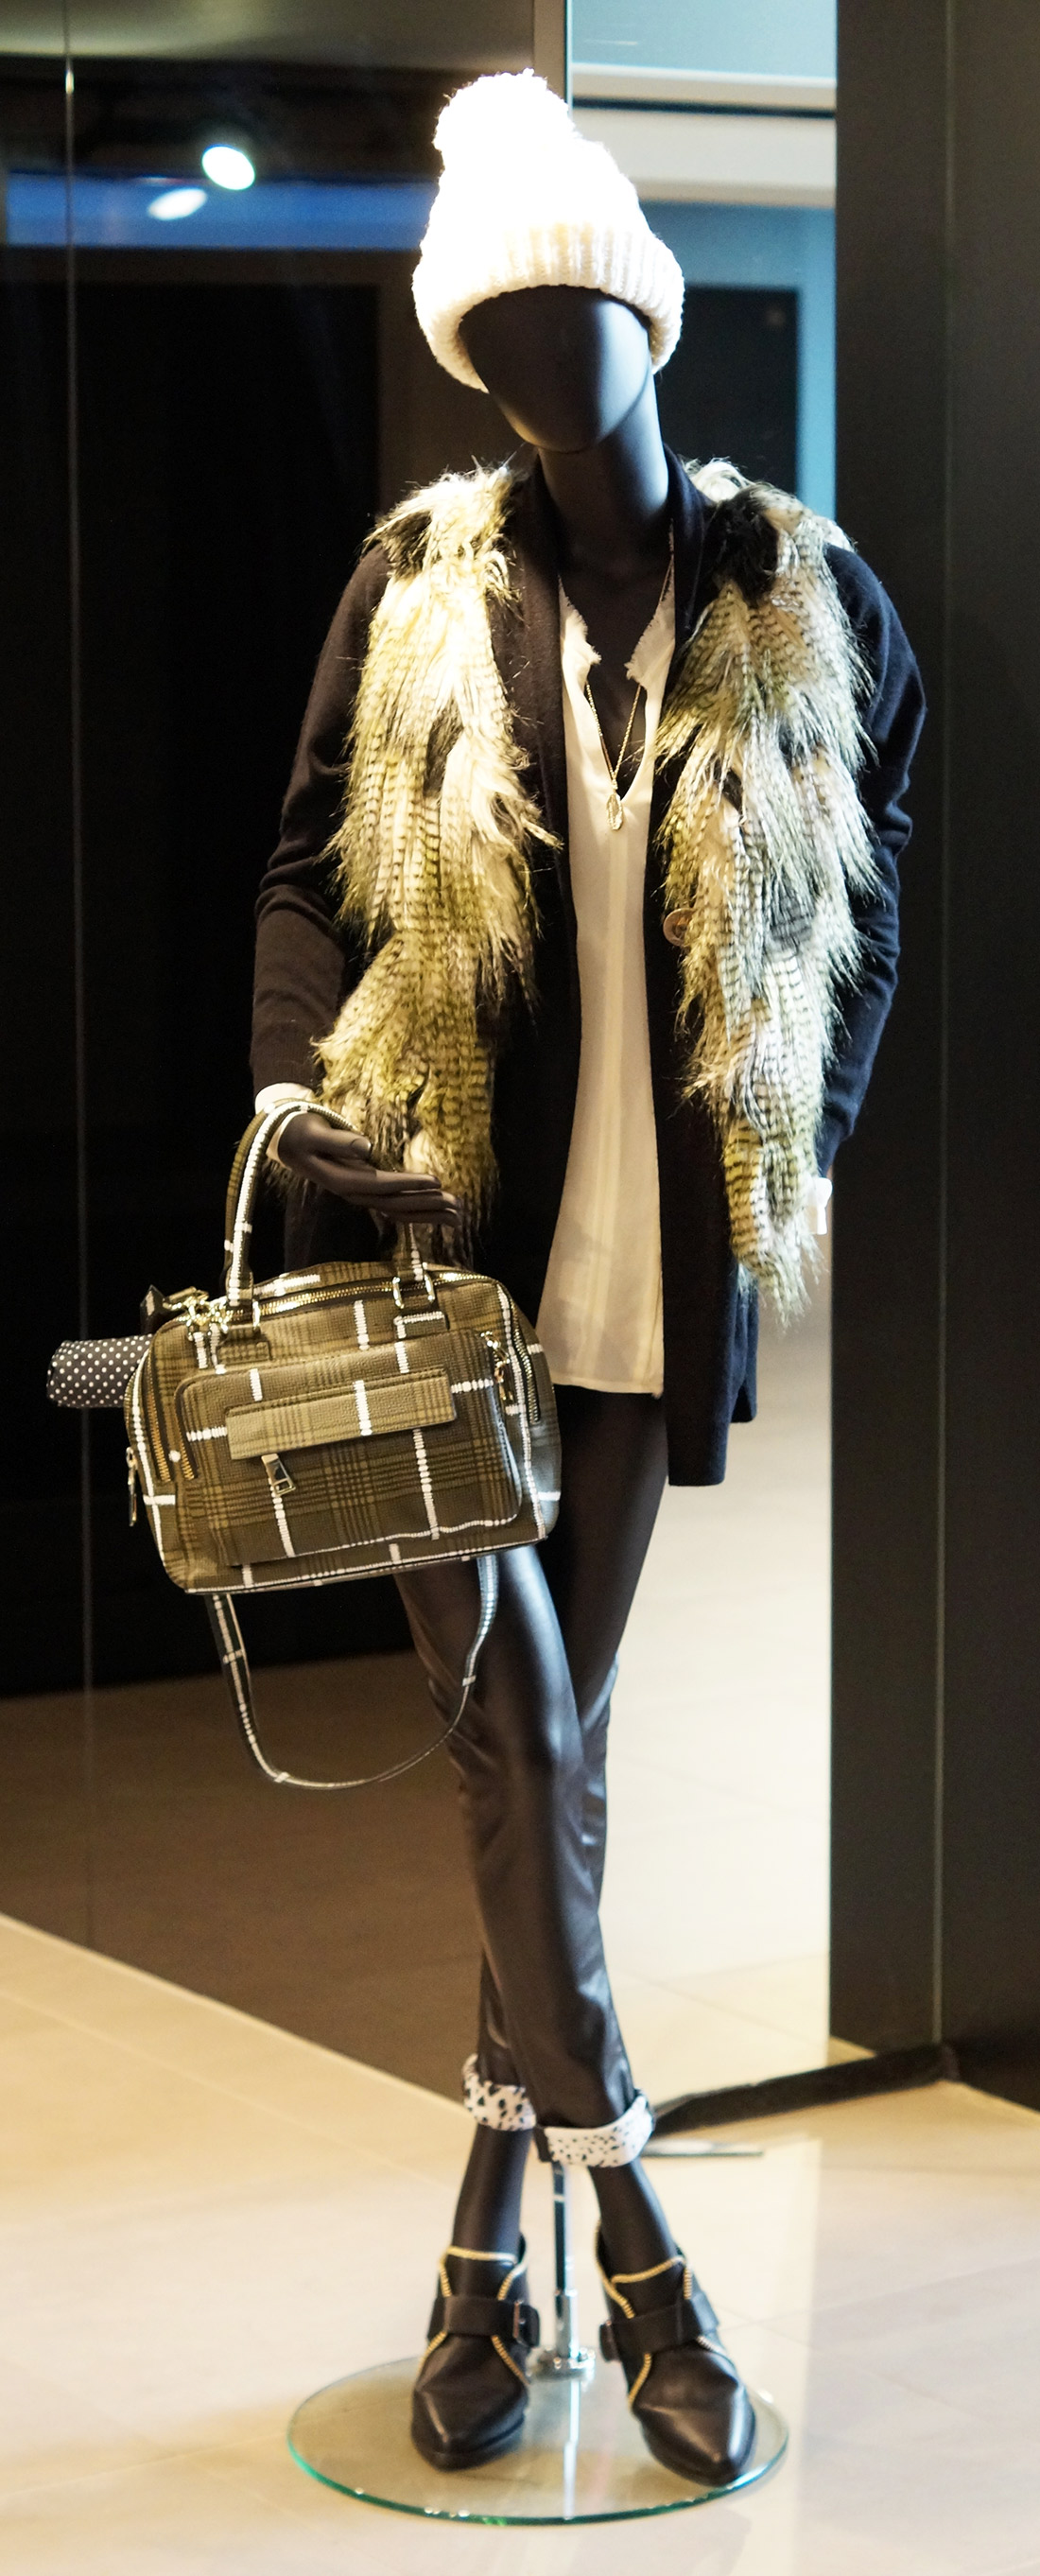 Bag-at-You---Fashion-blog---Unexpected-Fashion-Battle-in-Stadshart-Amstelveen---Complete-outfit-for-Urban-Outdoors